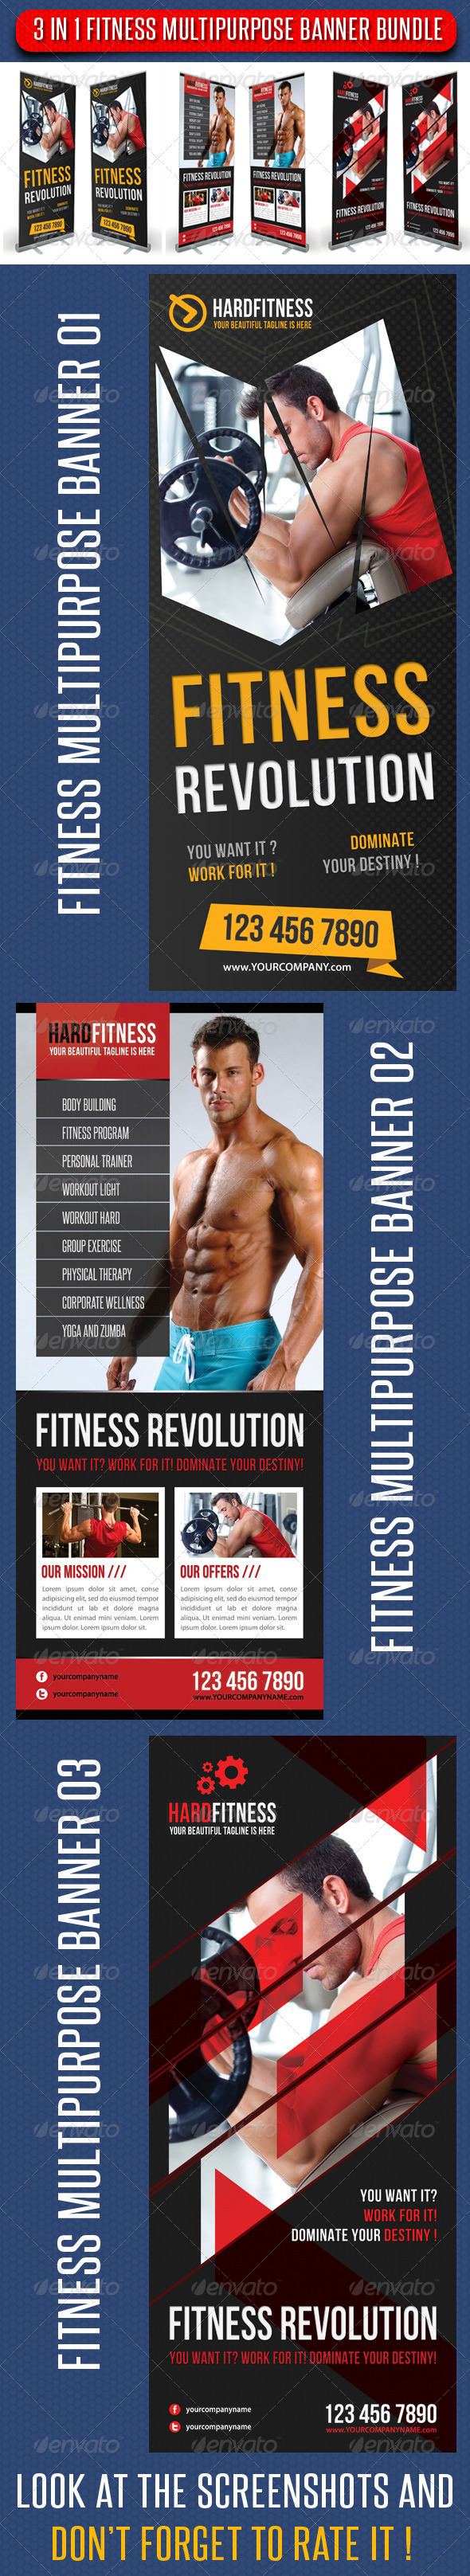 GraphicRiver 3 in 1 Fitness Multipurpose Banner Bundle 01 6573261